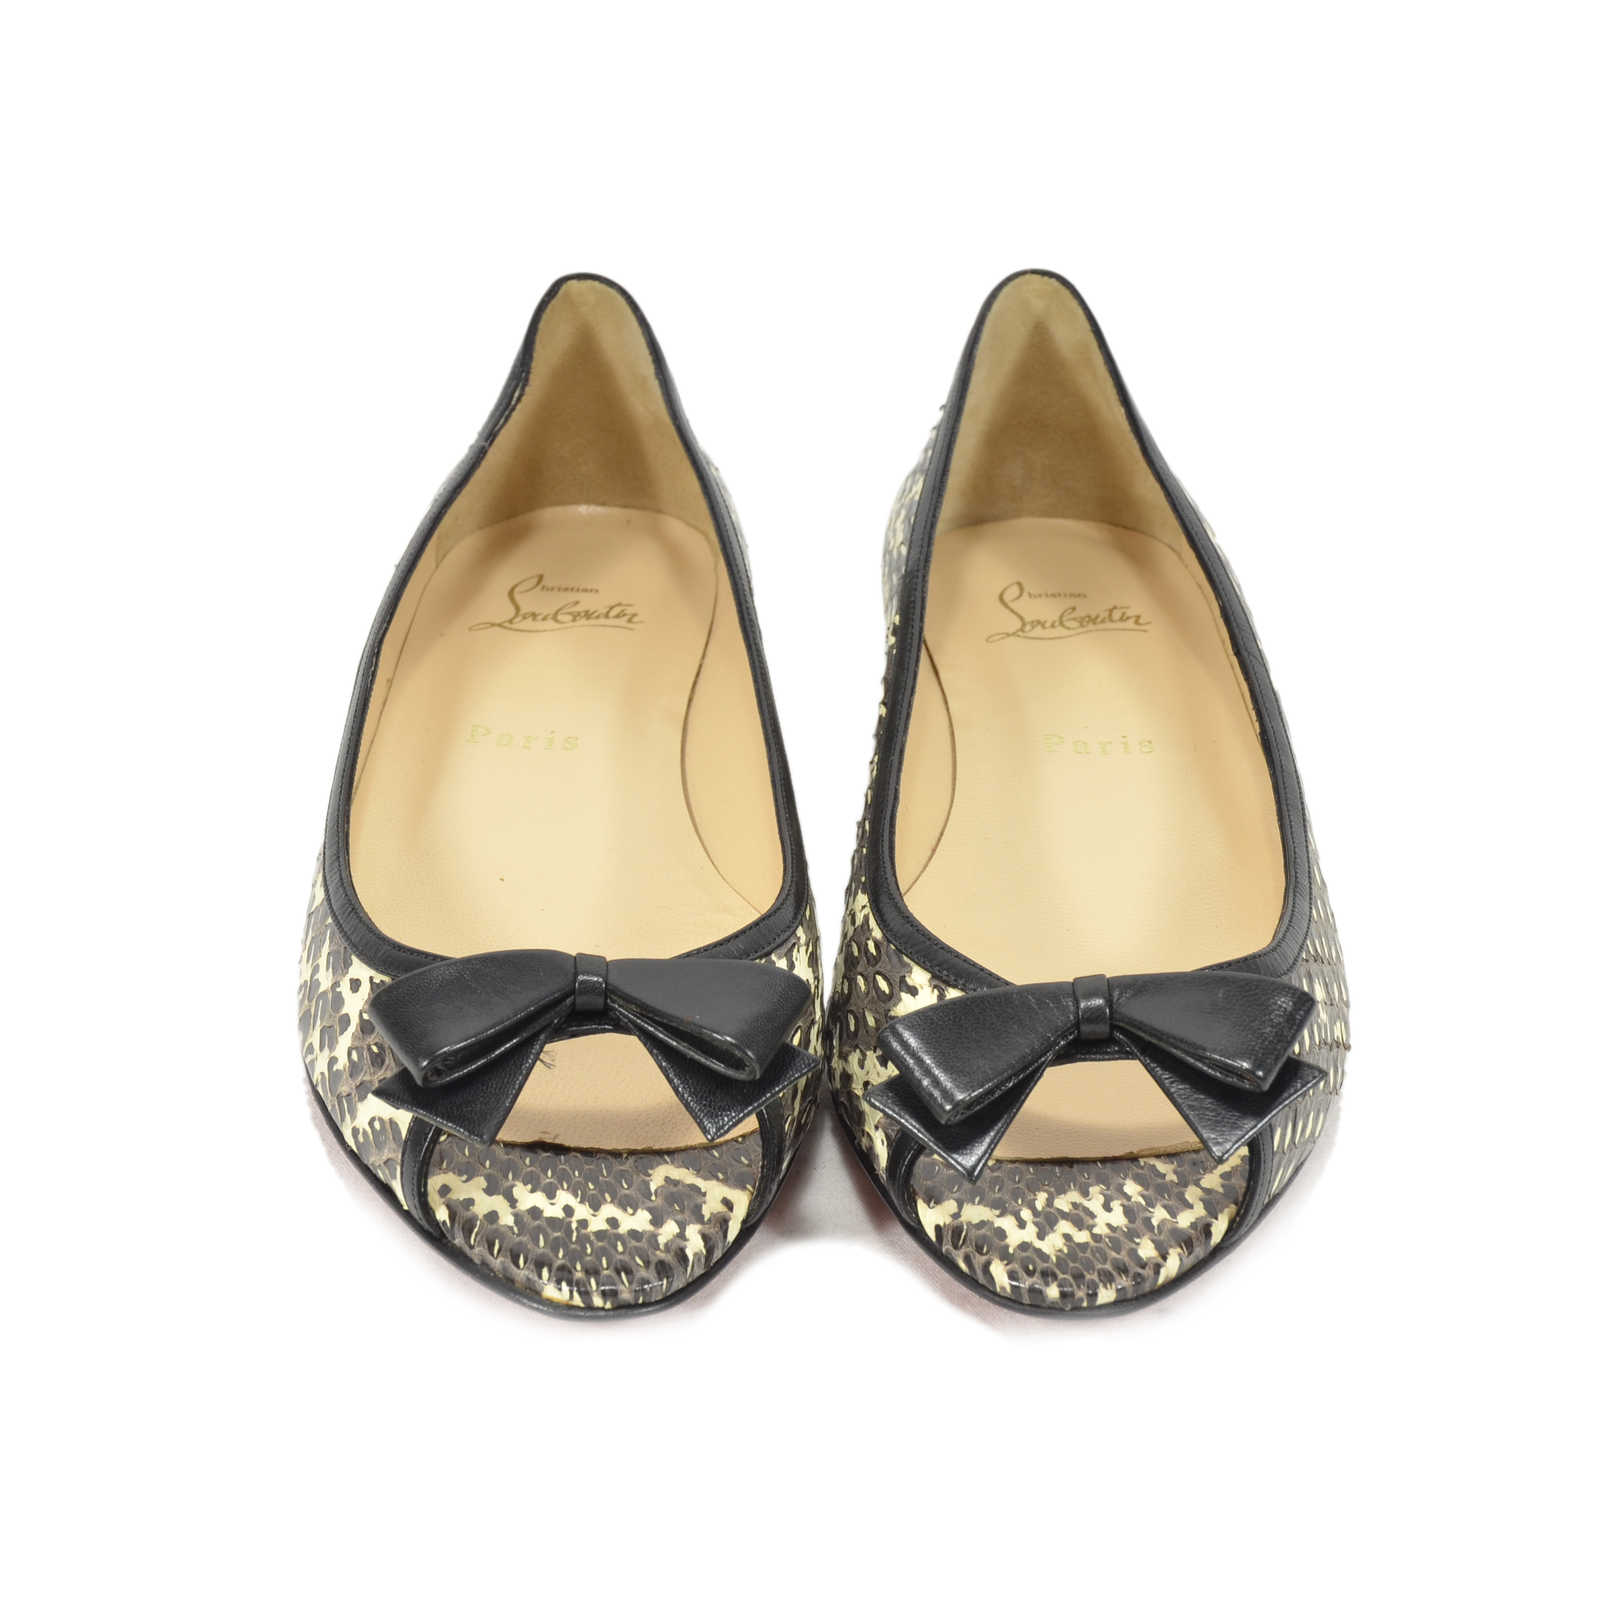 newest 7f691 120d7 Authentic Second Hand Christian Louboutin Python Peep Toe ...